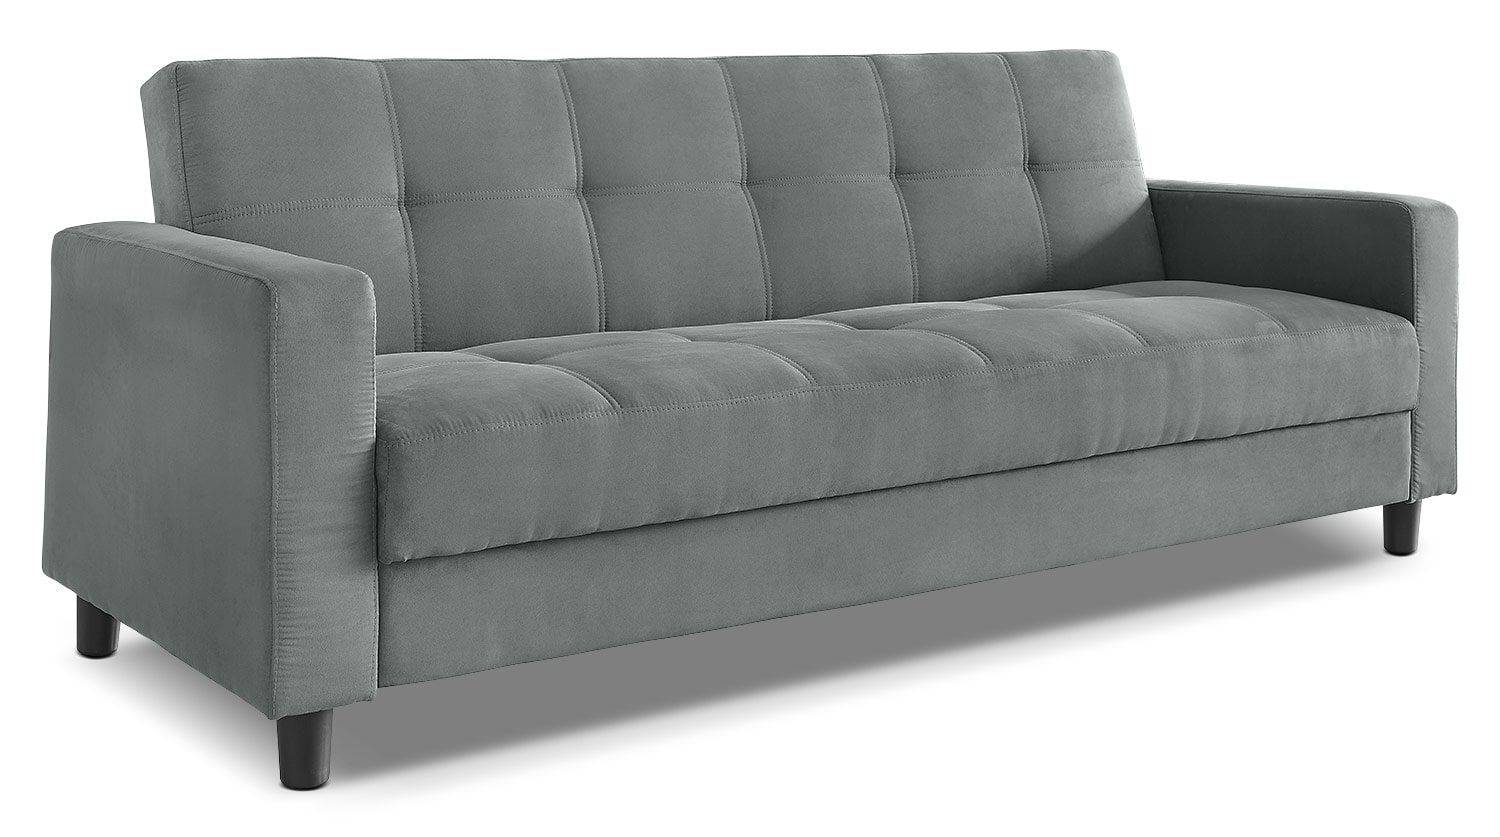 Living Room Furniture - Raeburn Convertible Sofa - Grey